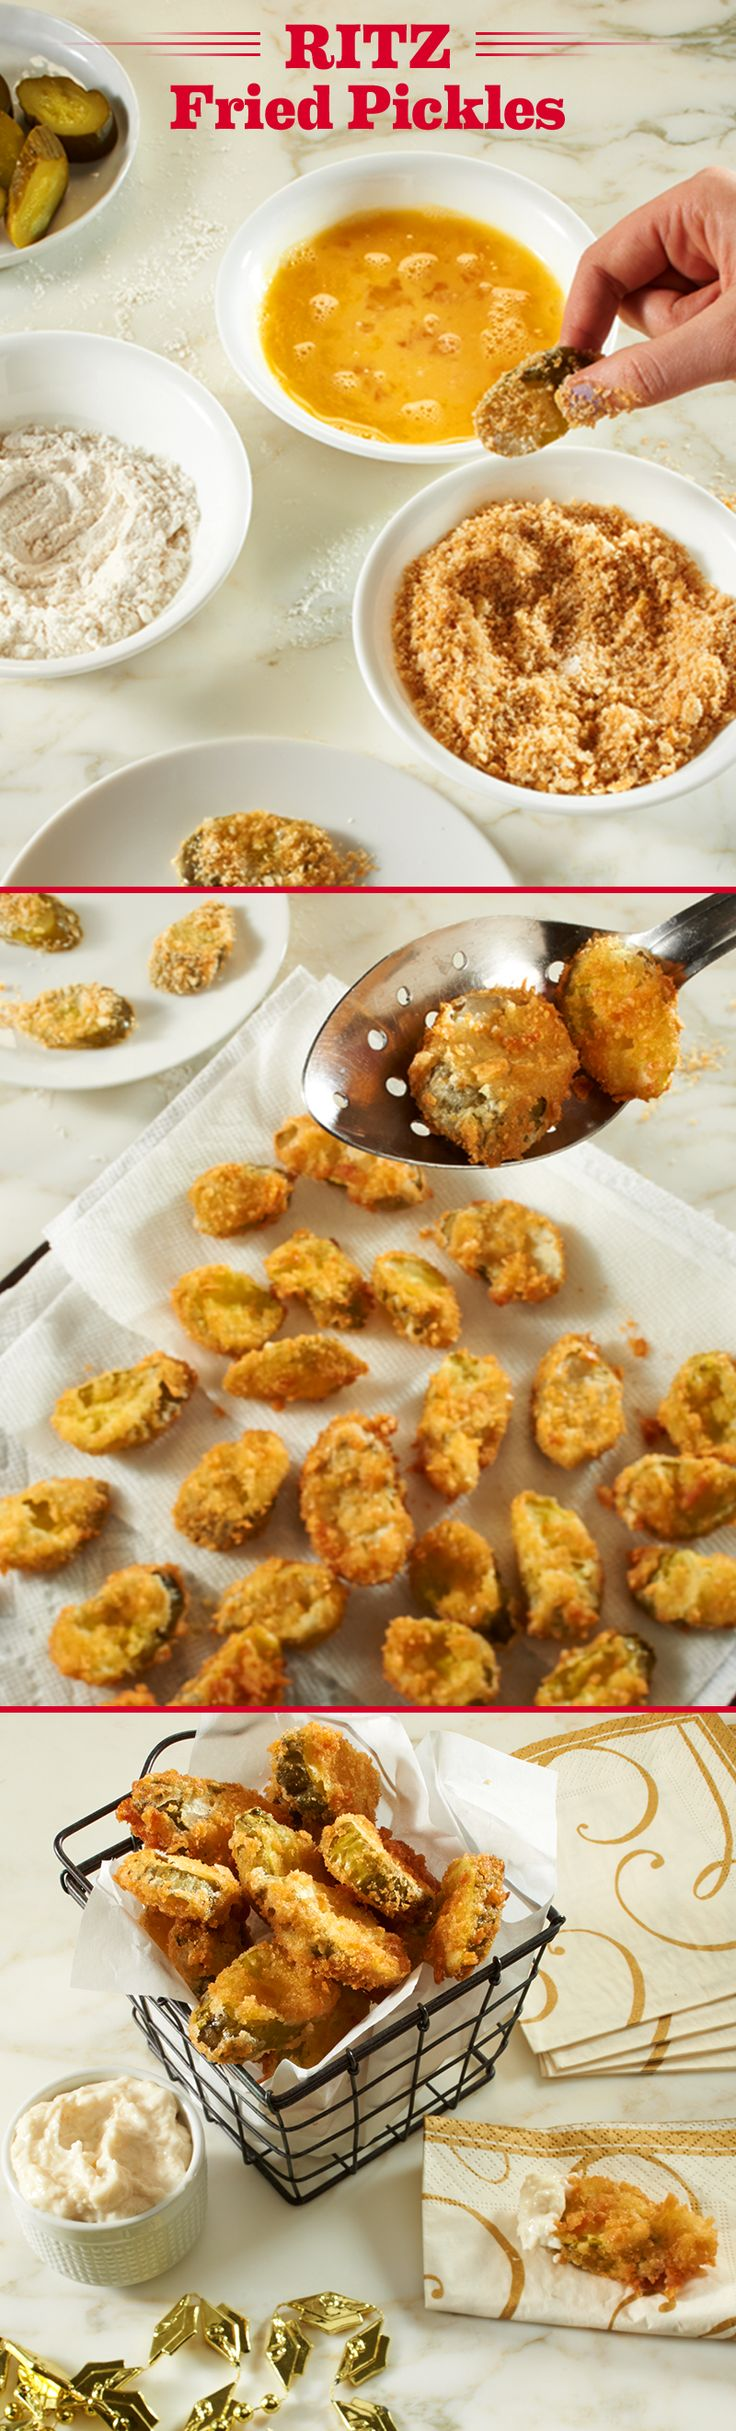 These RITZ Deep Fried Pickles are a great and easy appetizer to serve for a Memorial Day party. Replace traditional breadcrumbs with crumbled RITZ crackers to add a buttery taste and crunchy texture! Mix mayonnaise and horseradish for a side of savory dipping sauce. Yum! You can also dip in your favorite barbecue sauce for a smoky flavor. Life's Rich.